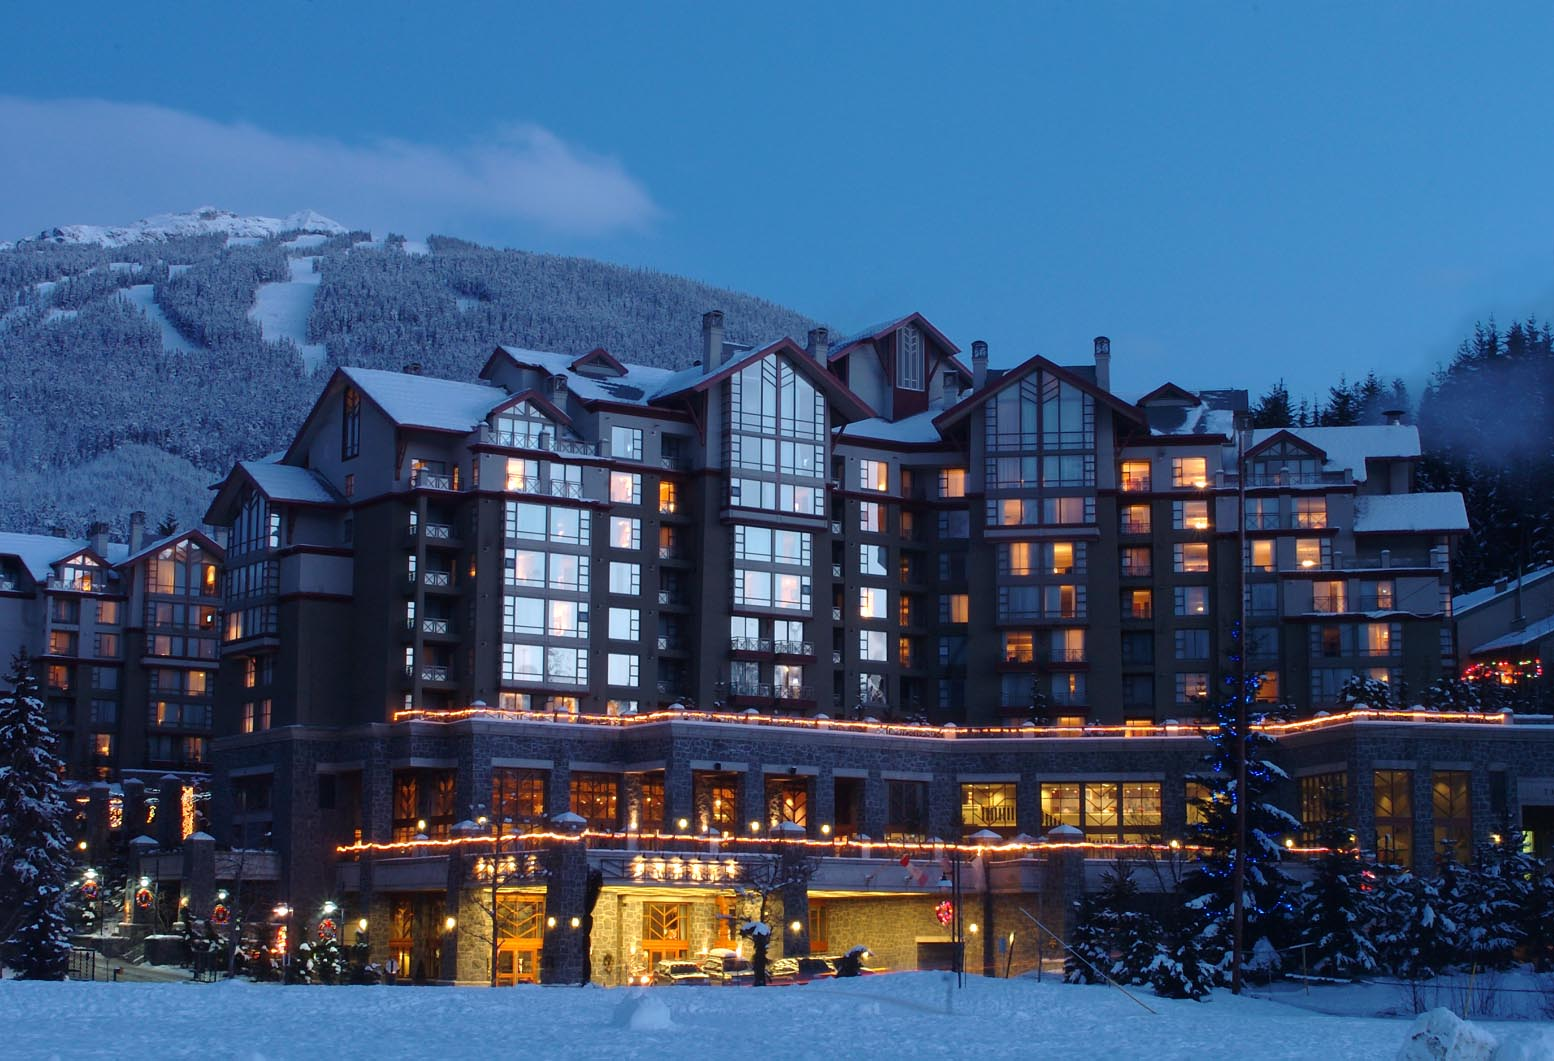 whistler luxury home rentals amp packages local whistler service